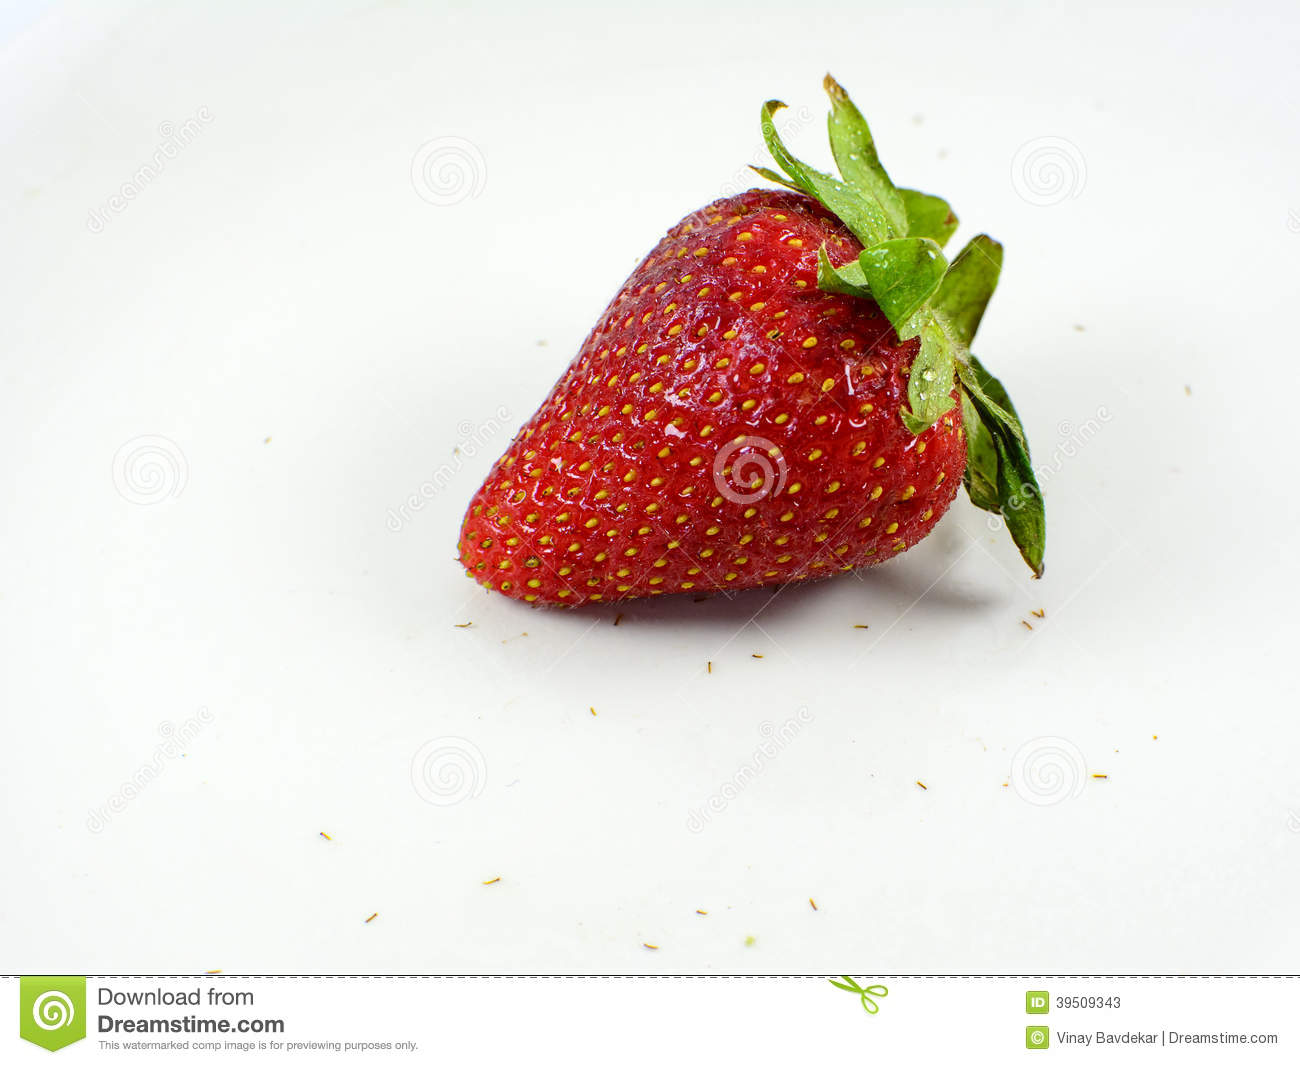 A red strawberry on white background